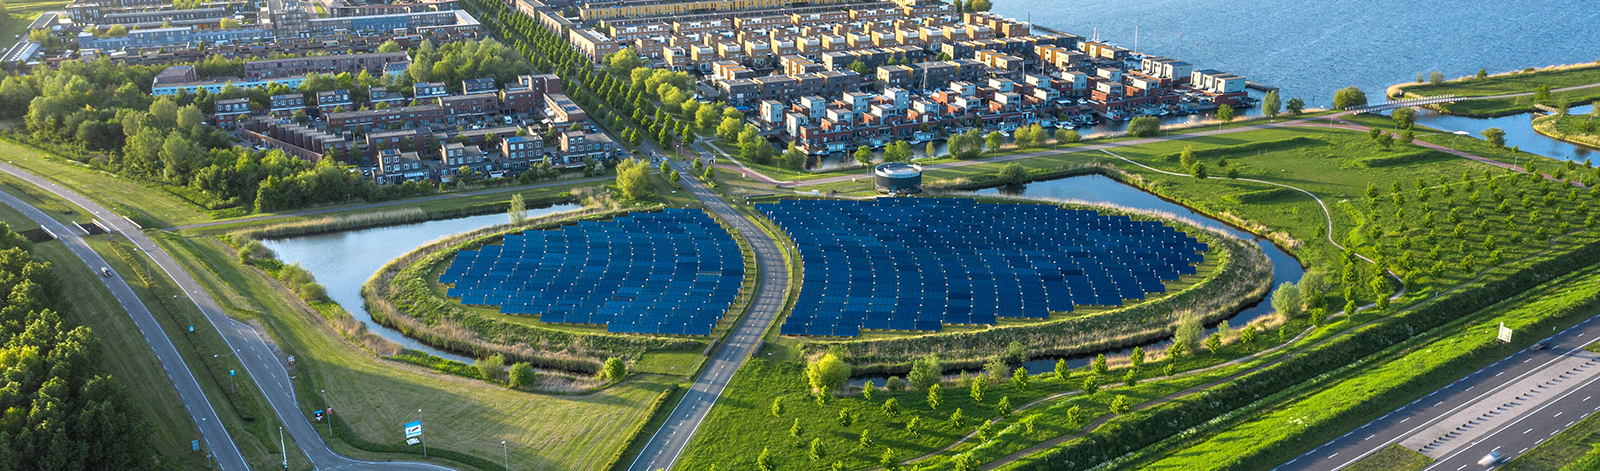 Aerial shot of a sustainable neighborhood in Almere, The Netherlands